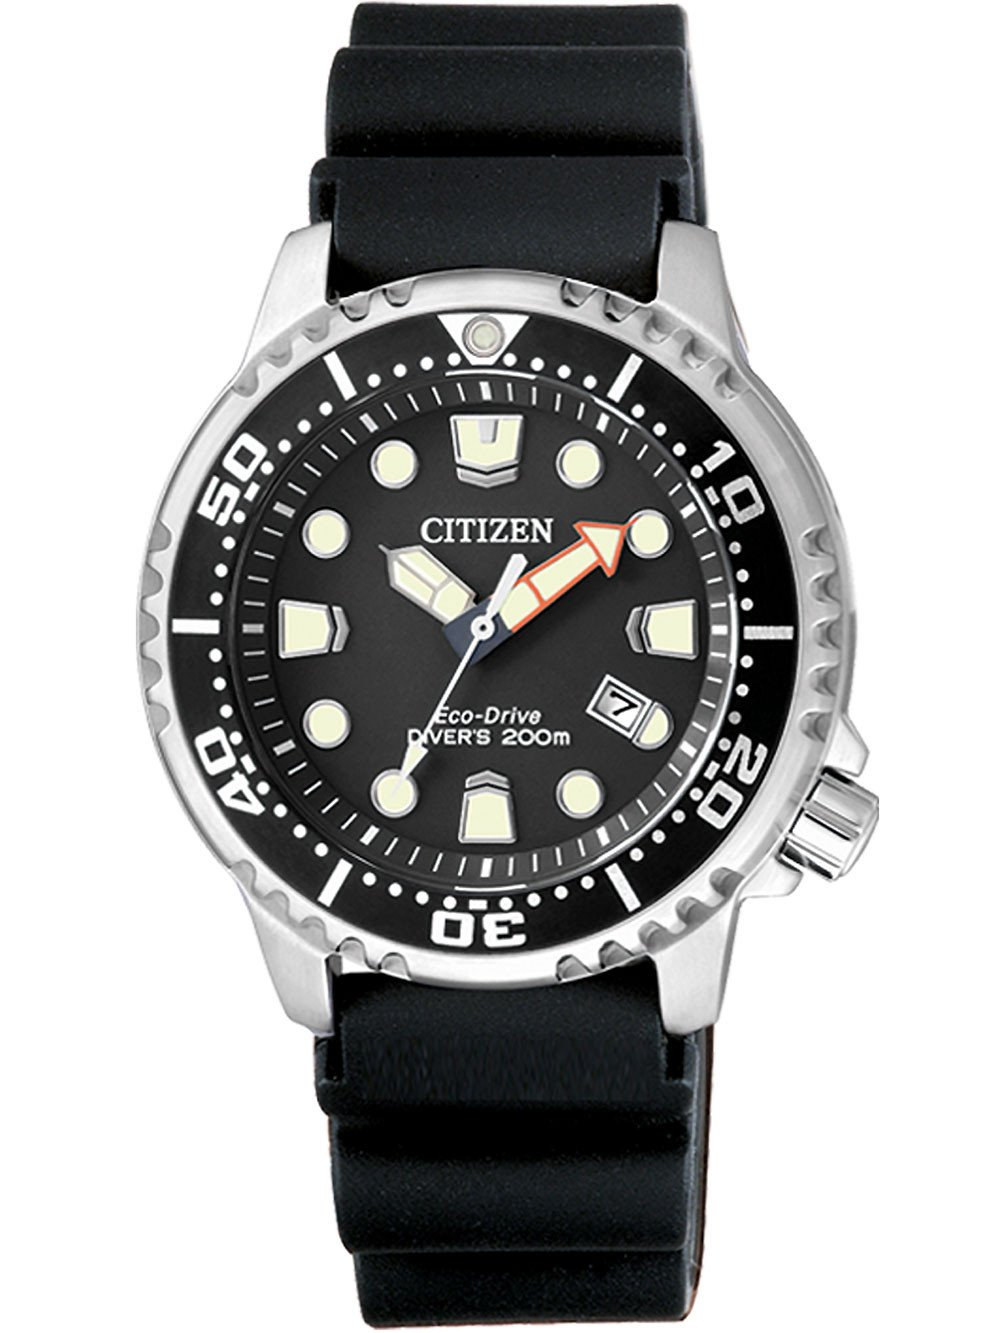 Citizen EP6050-17E Eco-Drive Promaster-Sea Diver Watch